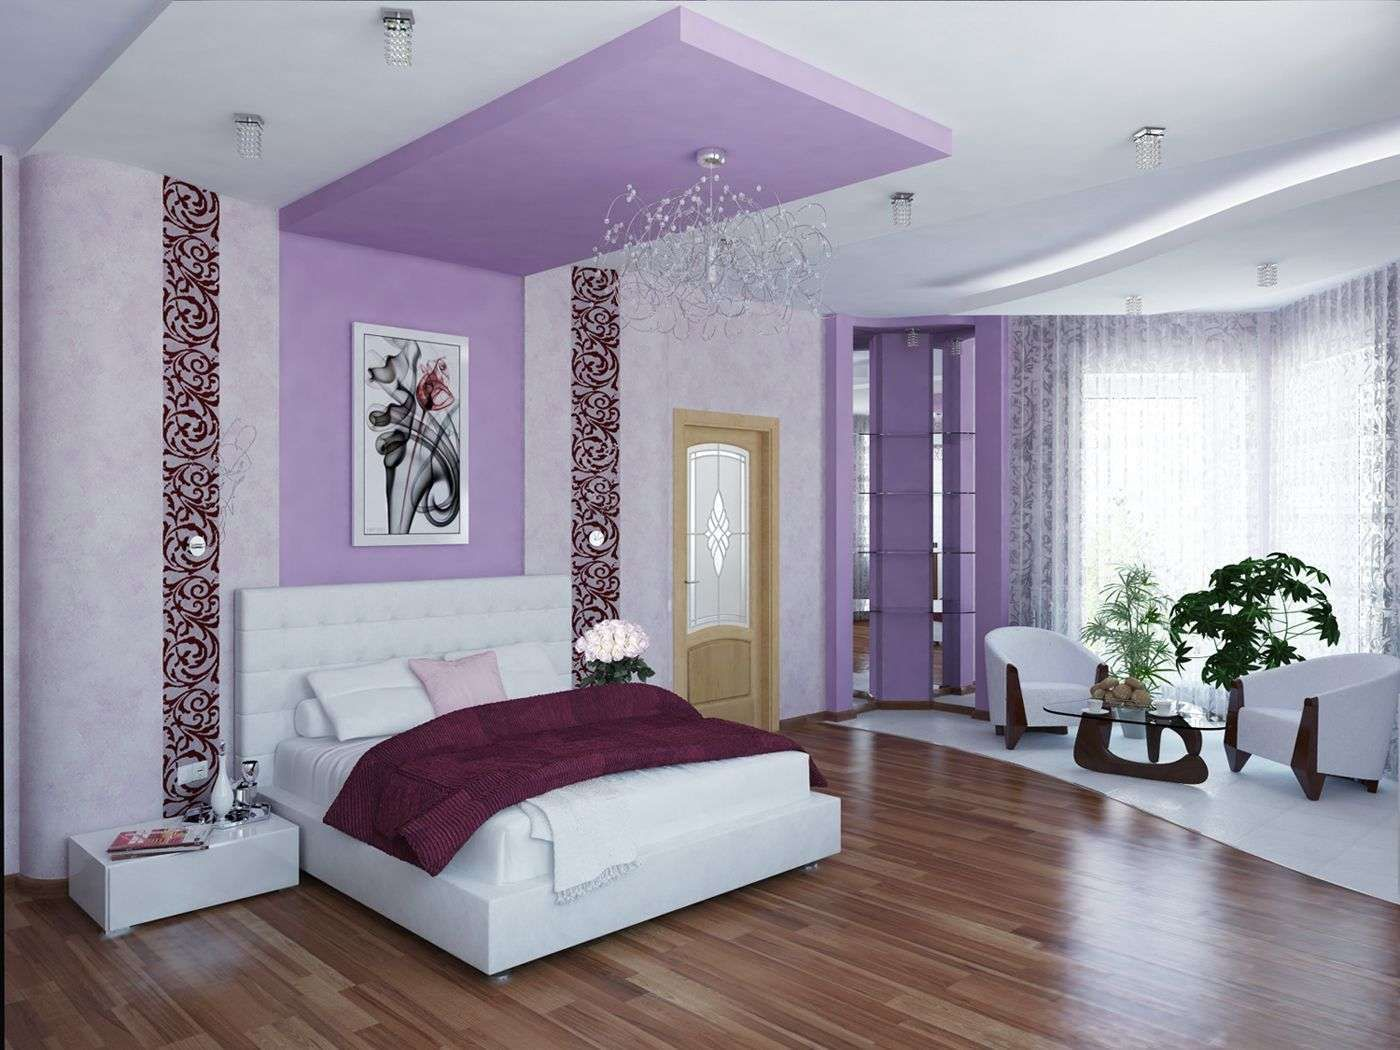 Bedroom Colors Hd teembedrooms | paint colors for teen bedrooms | hd wallpapers